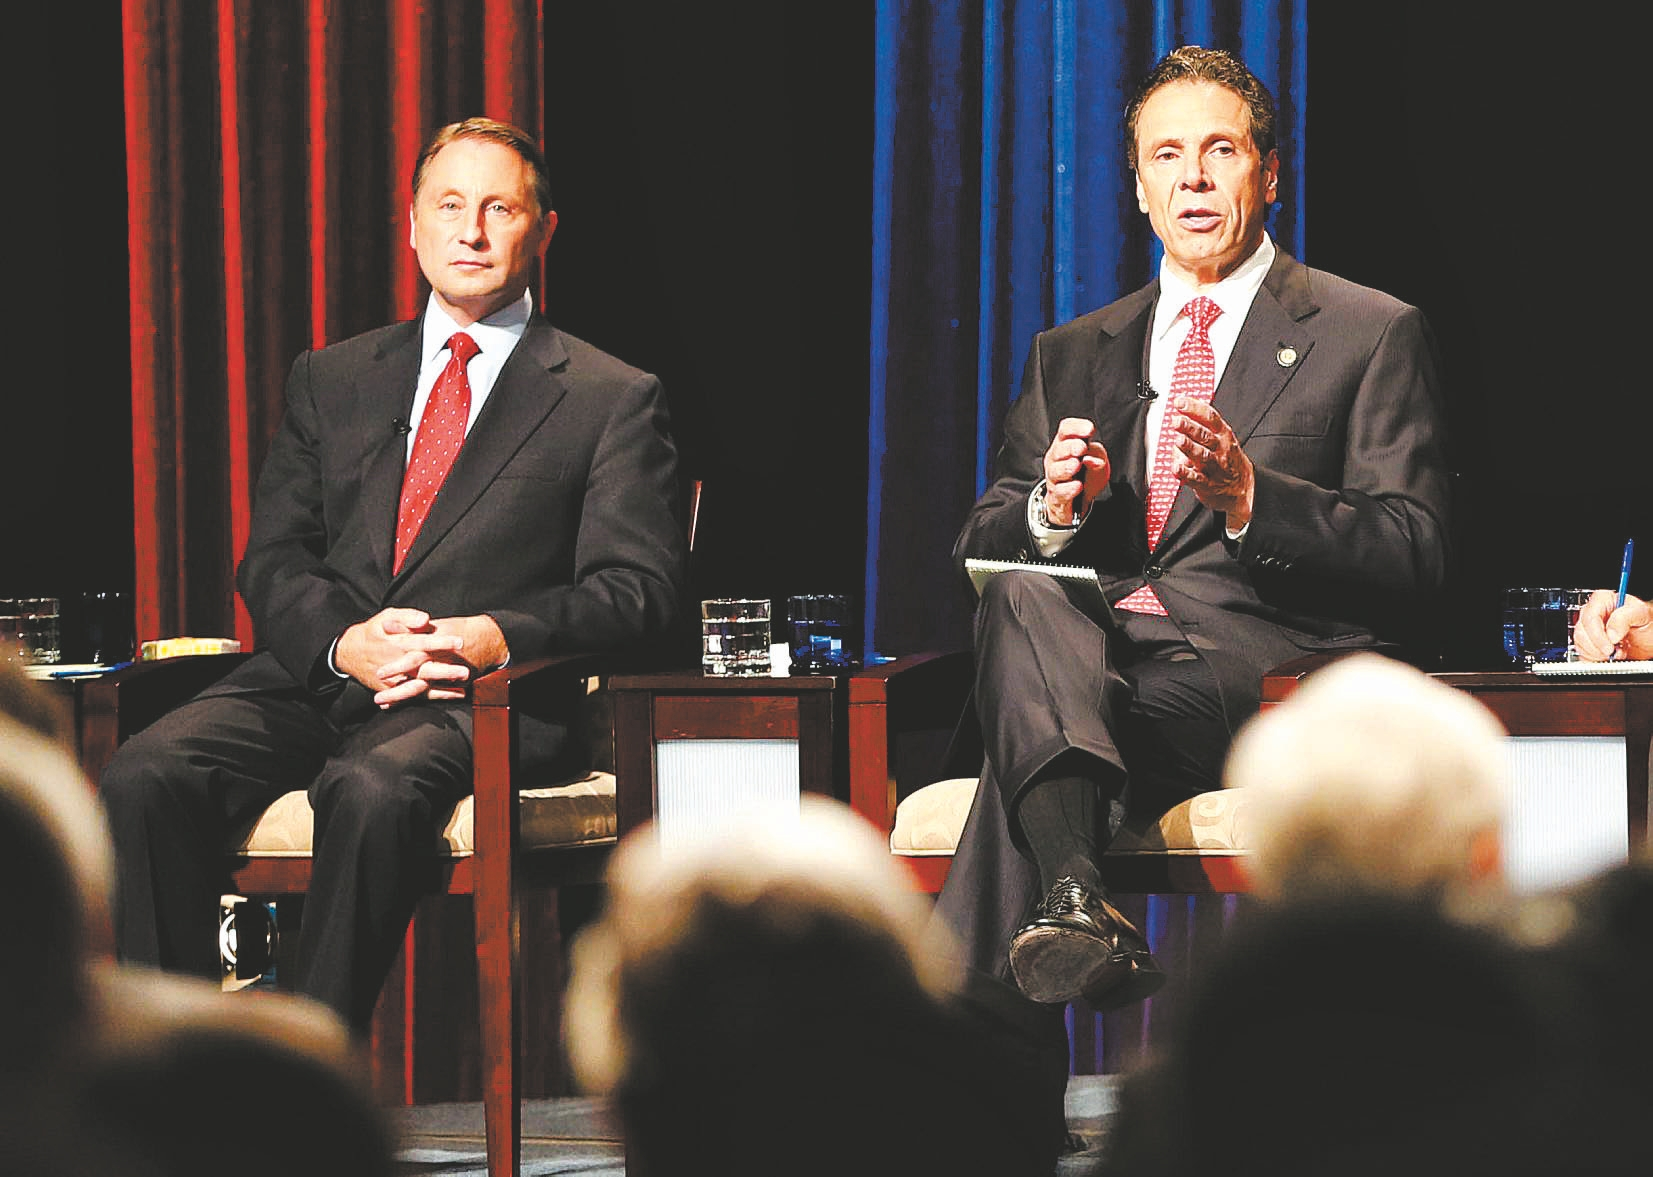 Democratic Gov. Andrew M. Cuomo gets a turn to air his views as Republican rival Rob Astorino listens in Wednesday night's debate at WNED-TV, where participants also included Howie Hawkins of the Green Party and Libertarian candidate Michael McDermott.